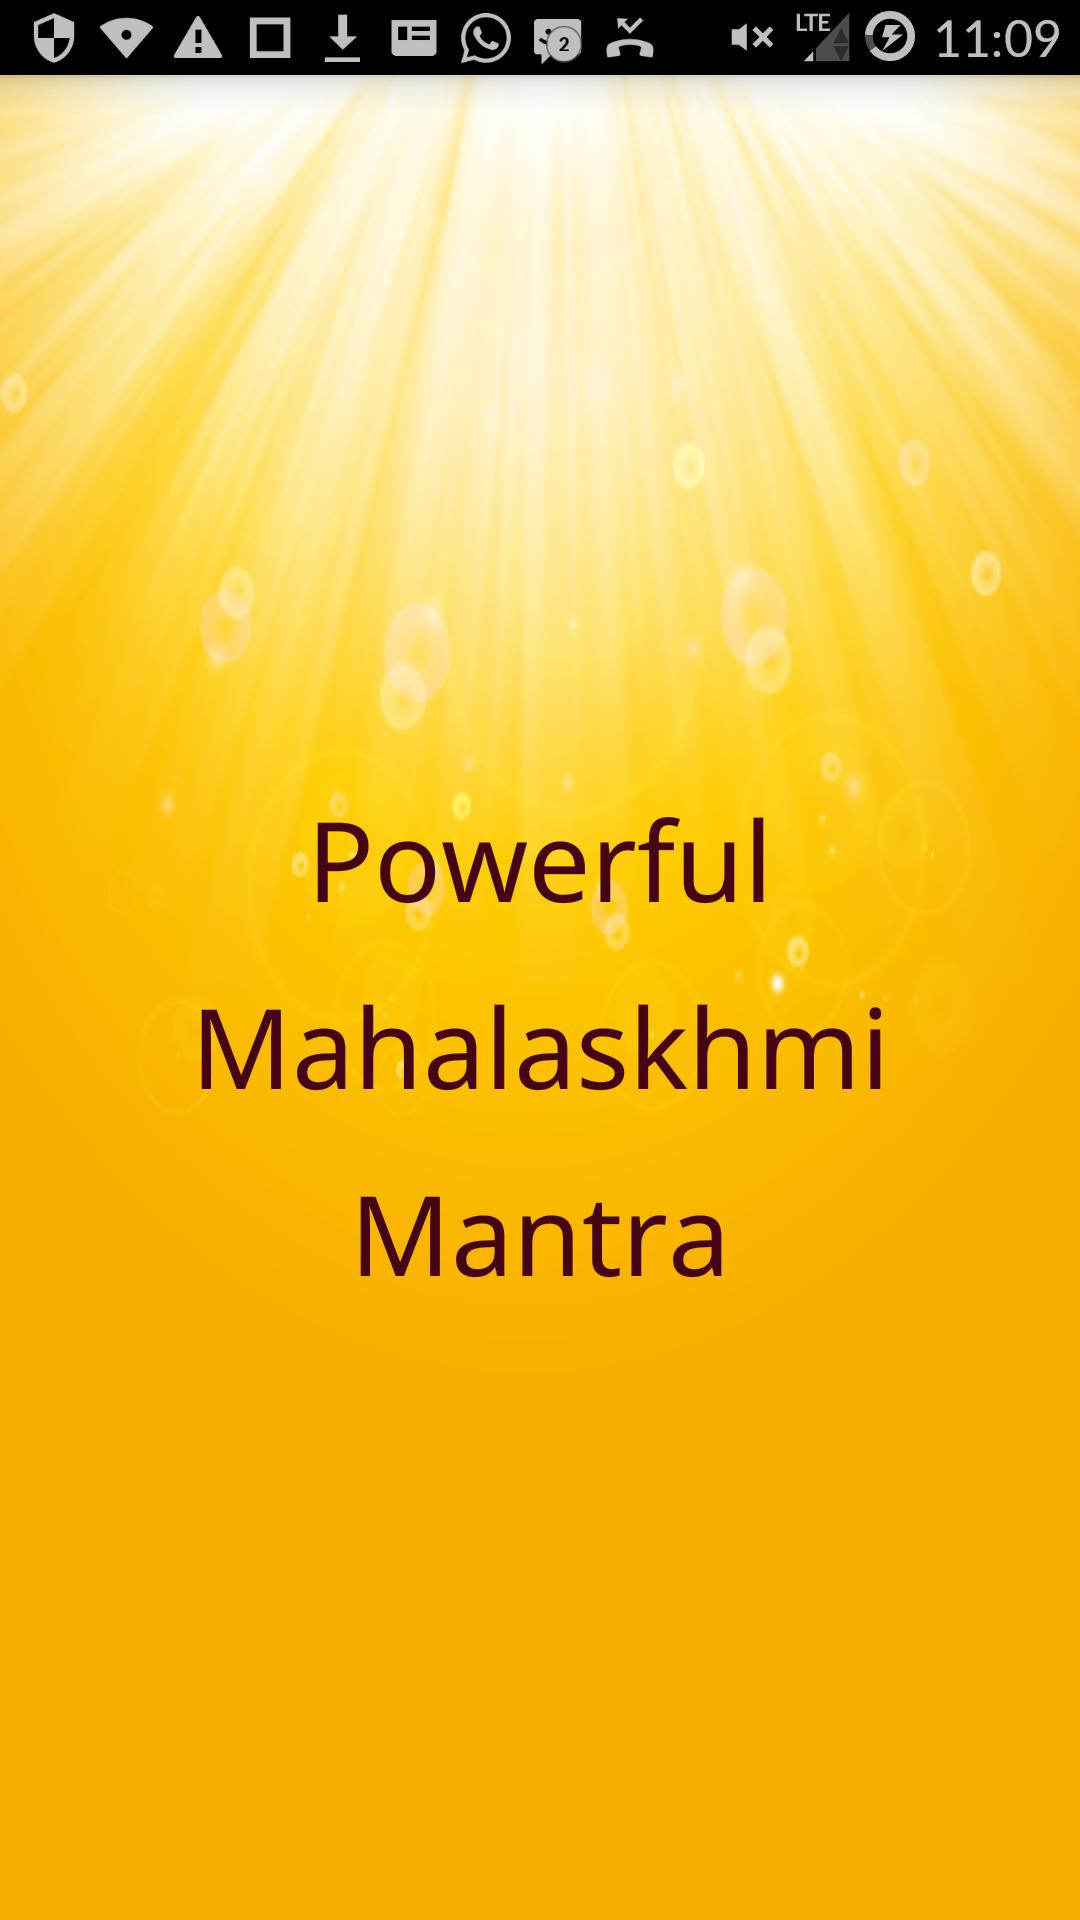 Powerful Mahalakshmi Mantra for Wealth for Android - APK